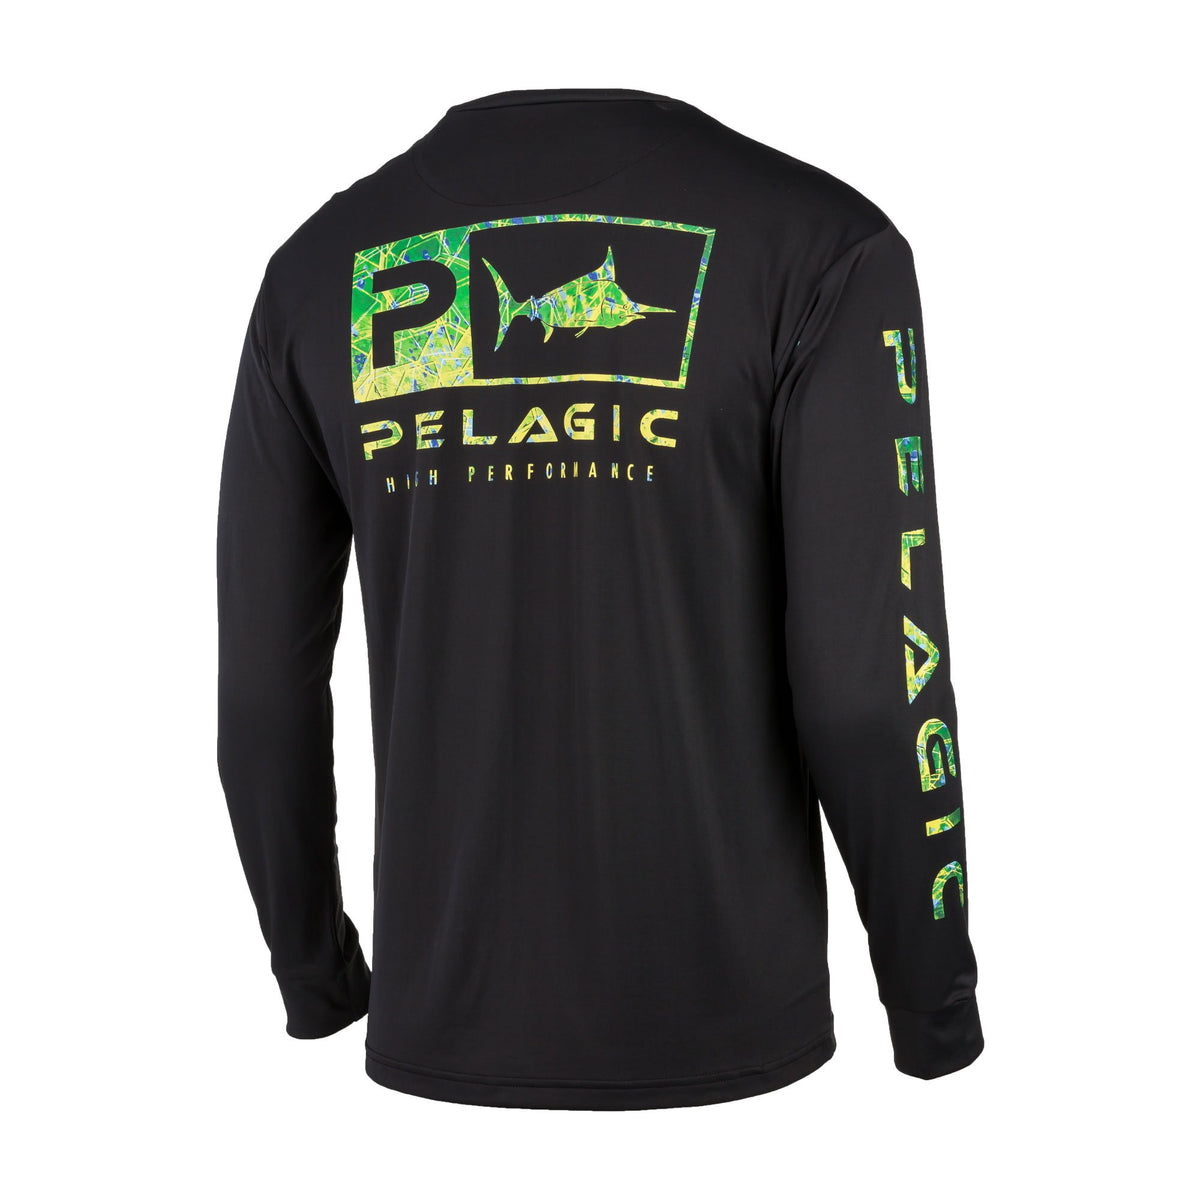 Aquatek Icon Long Sleeve Performance Shirt - Kids Big Image - 1